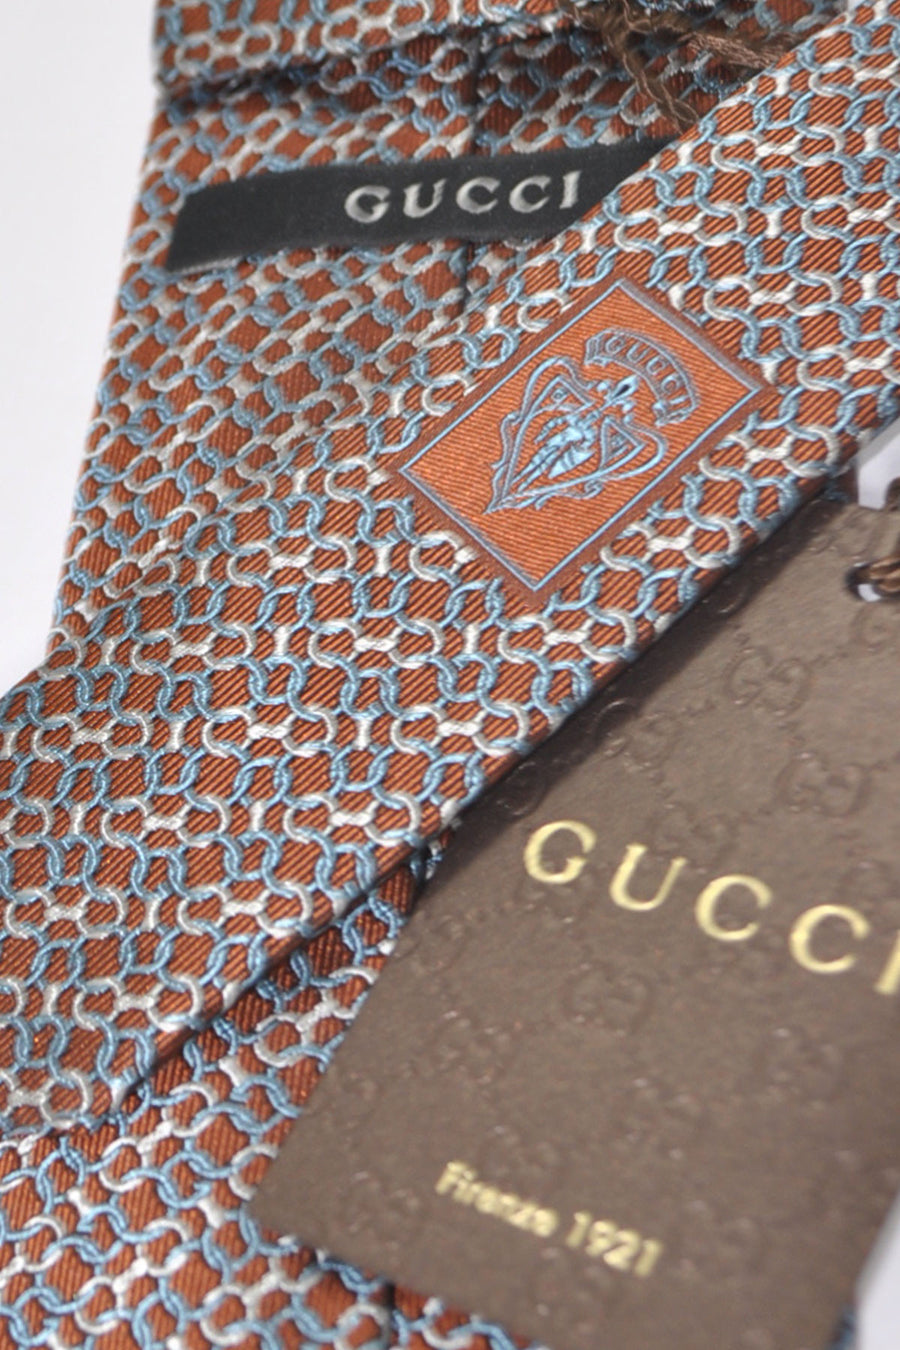 Gucci Tie Brown Metallic Gray Silver Geometric Design